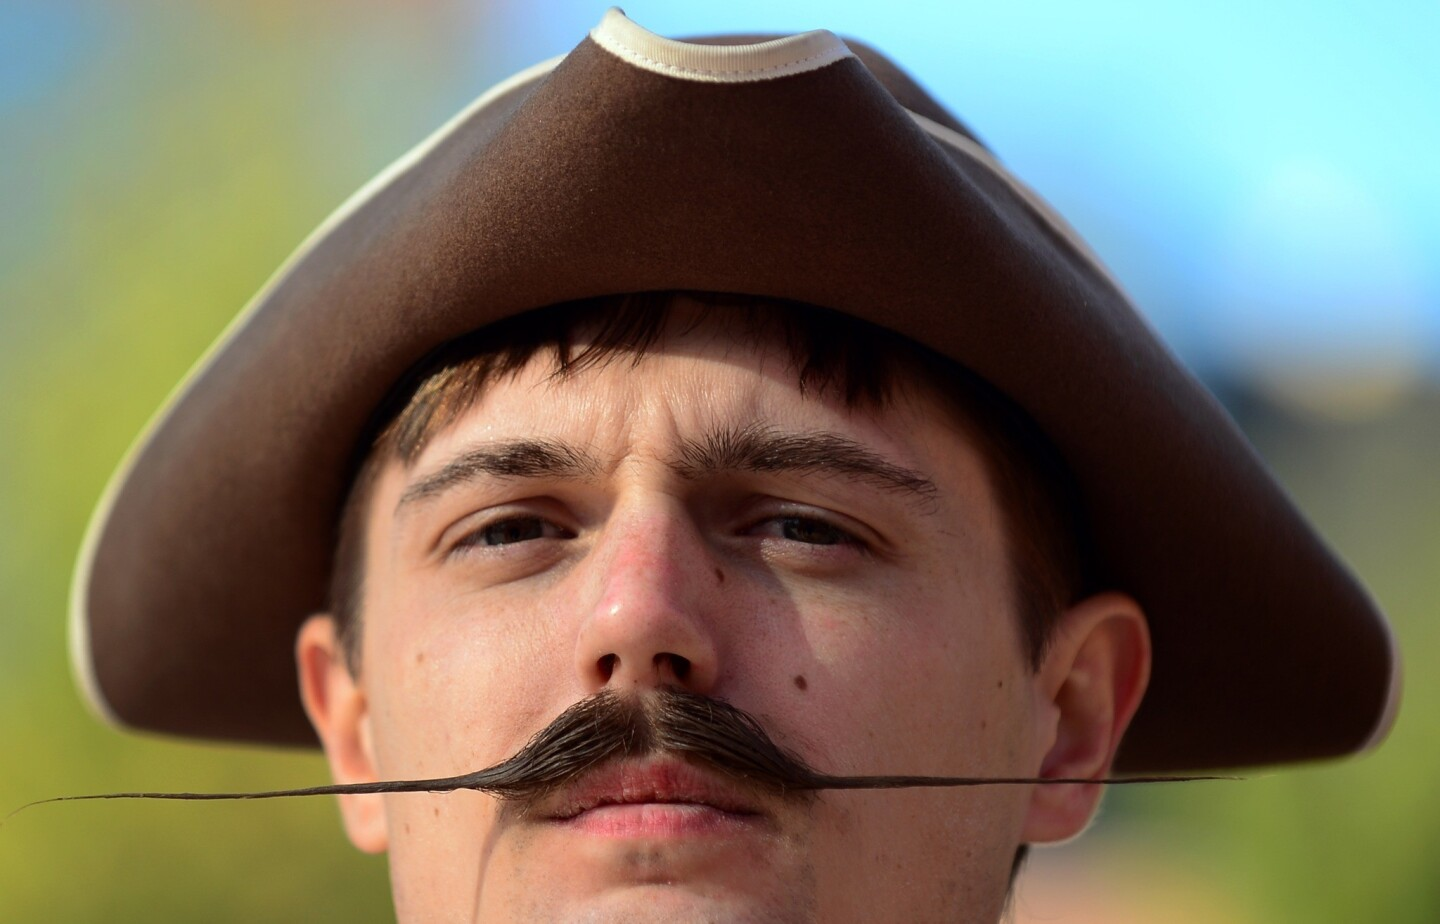 Patrick Fette from Louisville, Ky., took first place in the English mustache category.